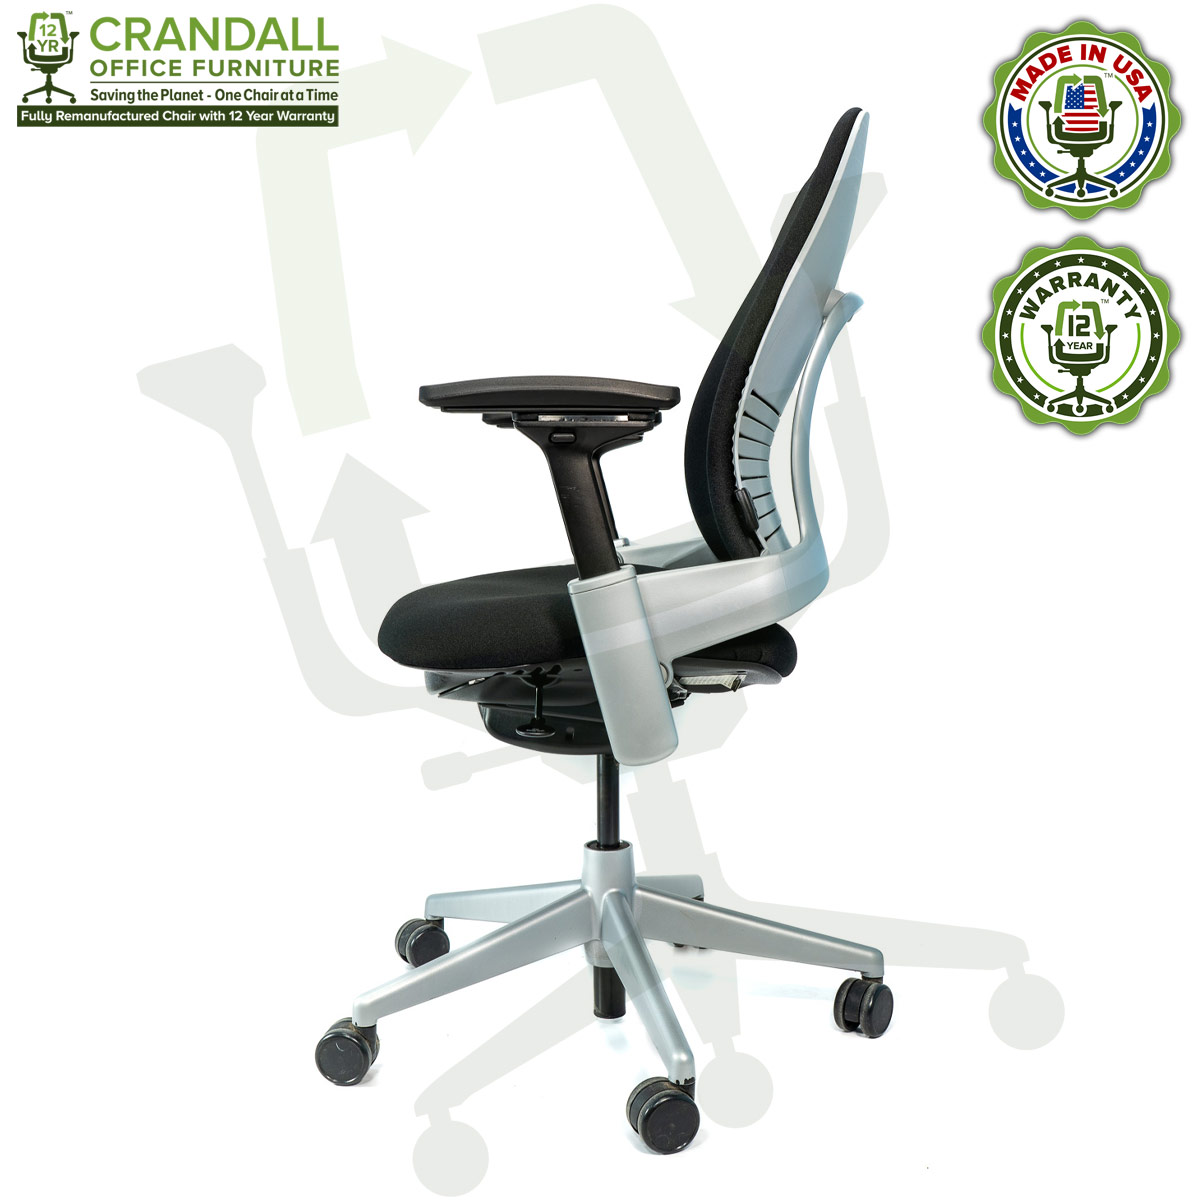 Crandall Office Furniture Remanufactured Steelcase V2 Leap Chair - Platinum Frame 05